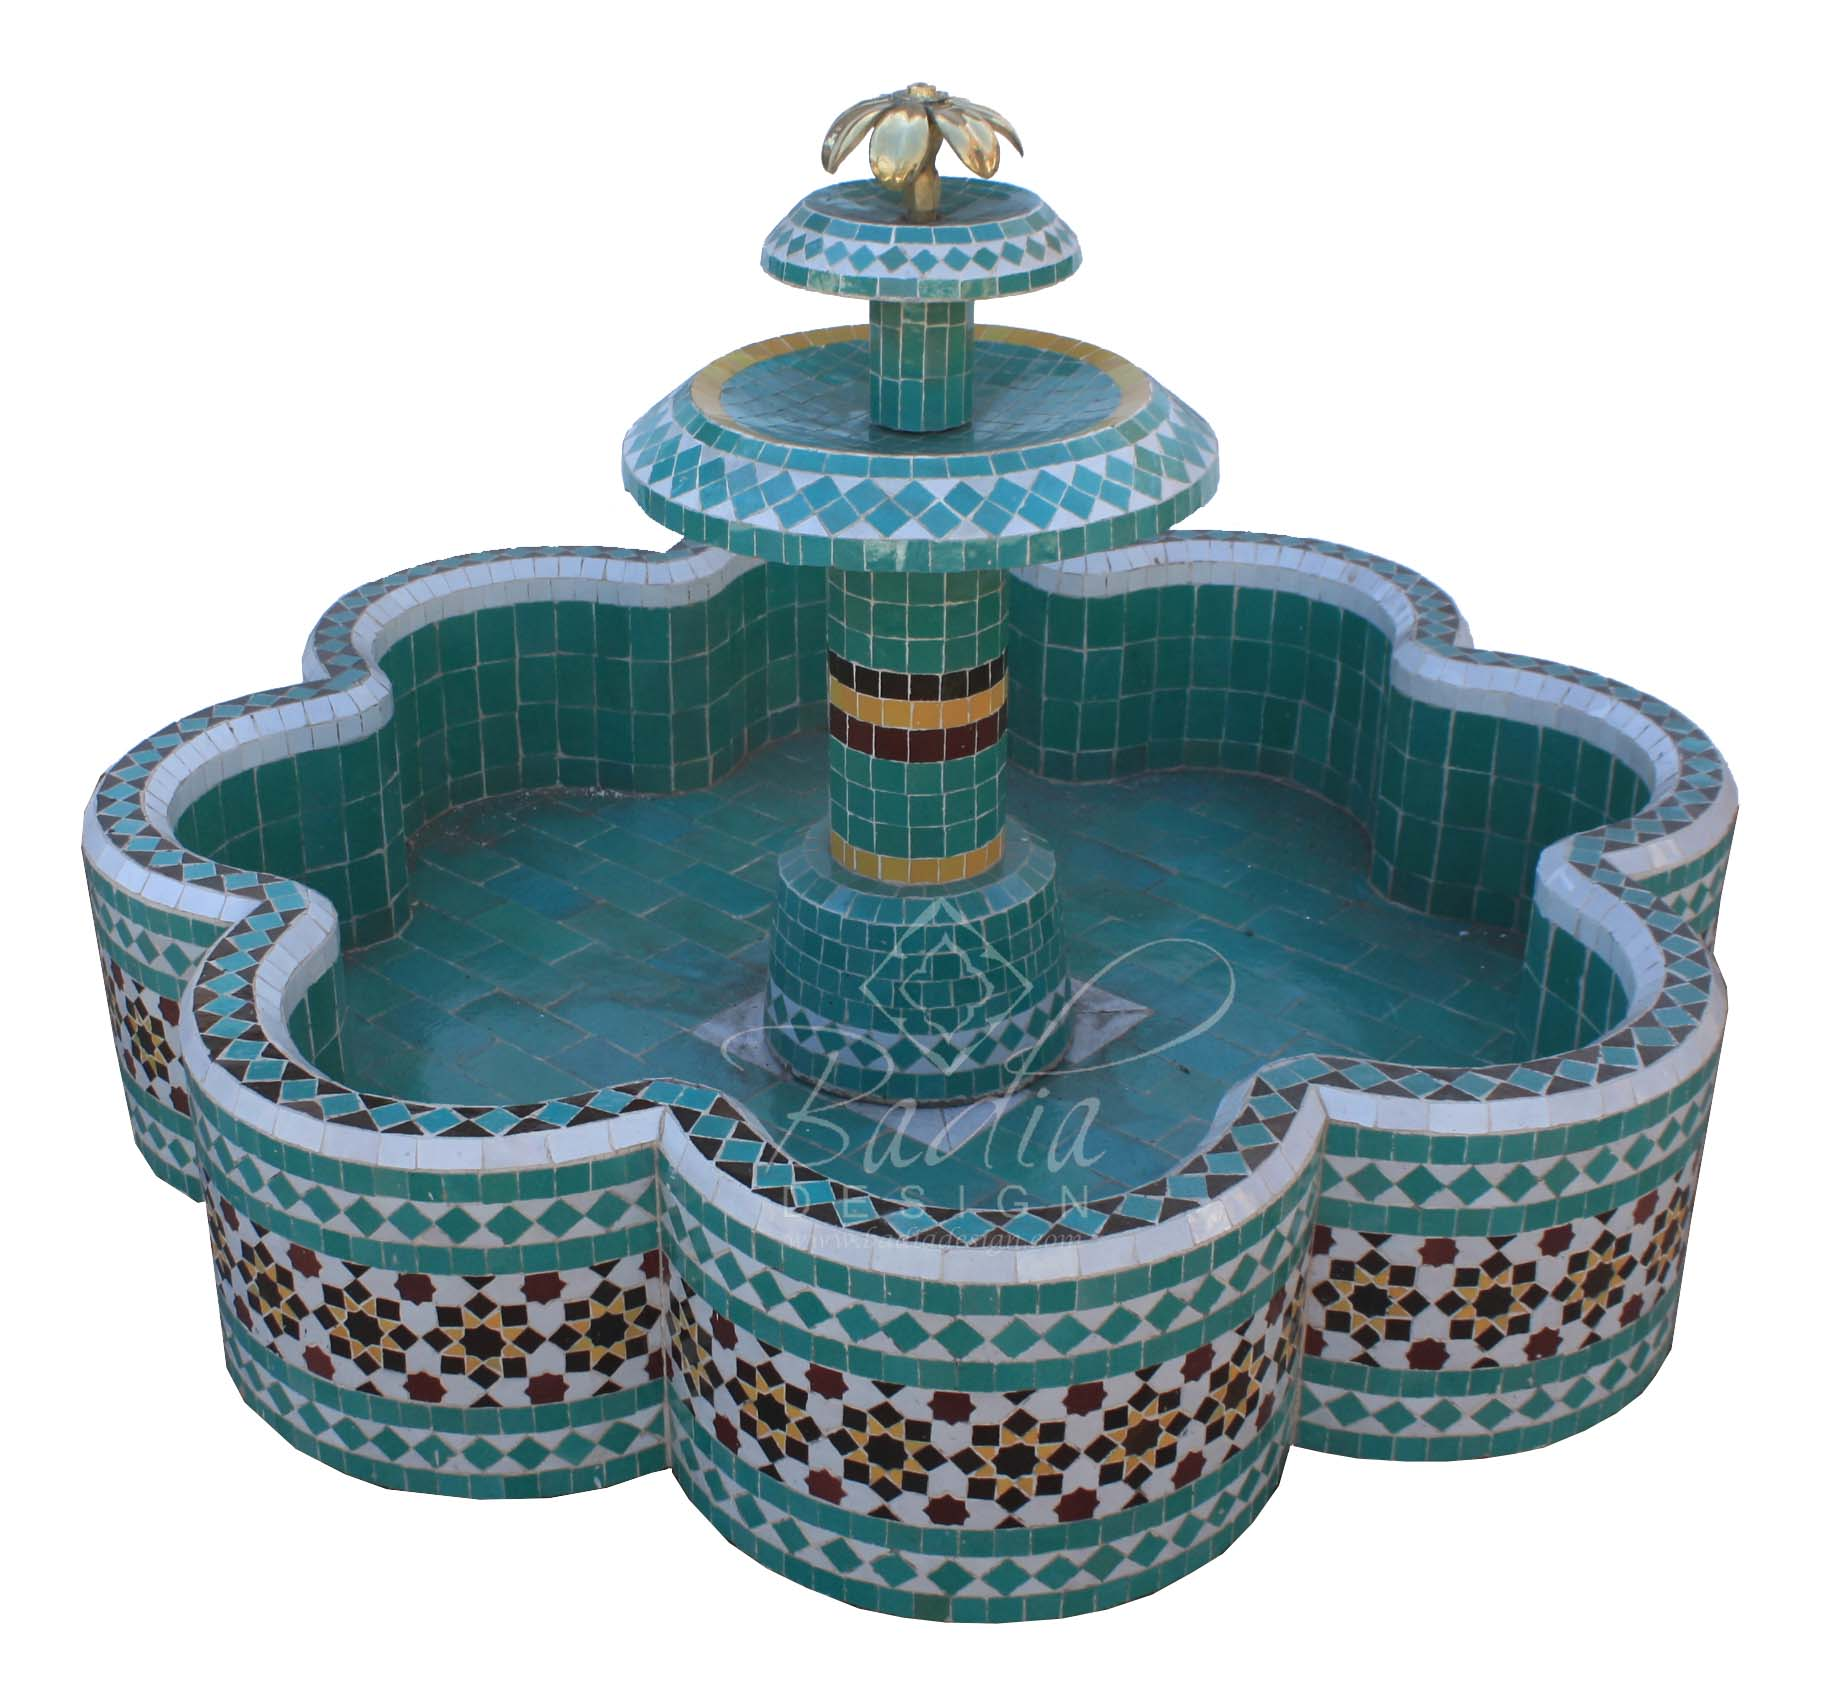 moroccan-mosaic-octagon-shaped-floor-water-fountain-mf683-1.jpg